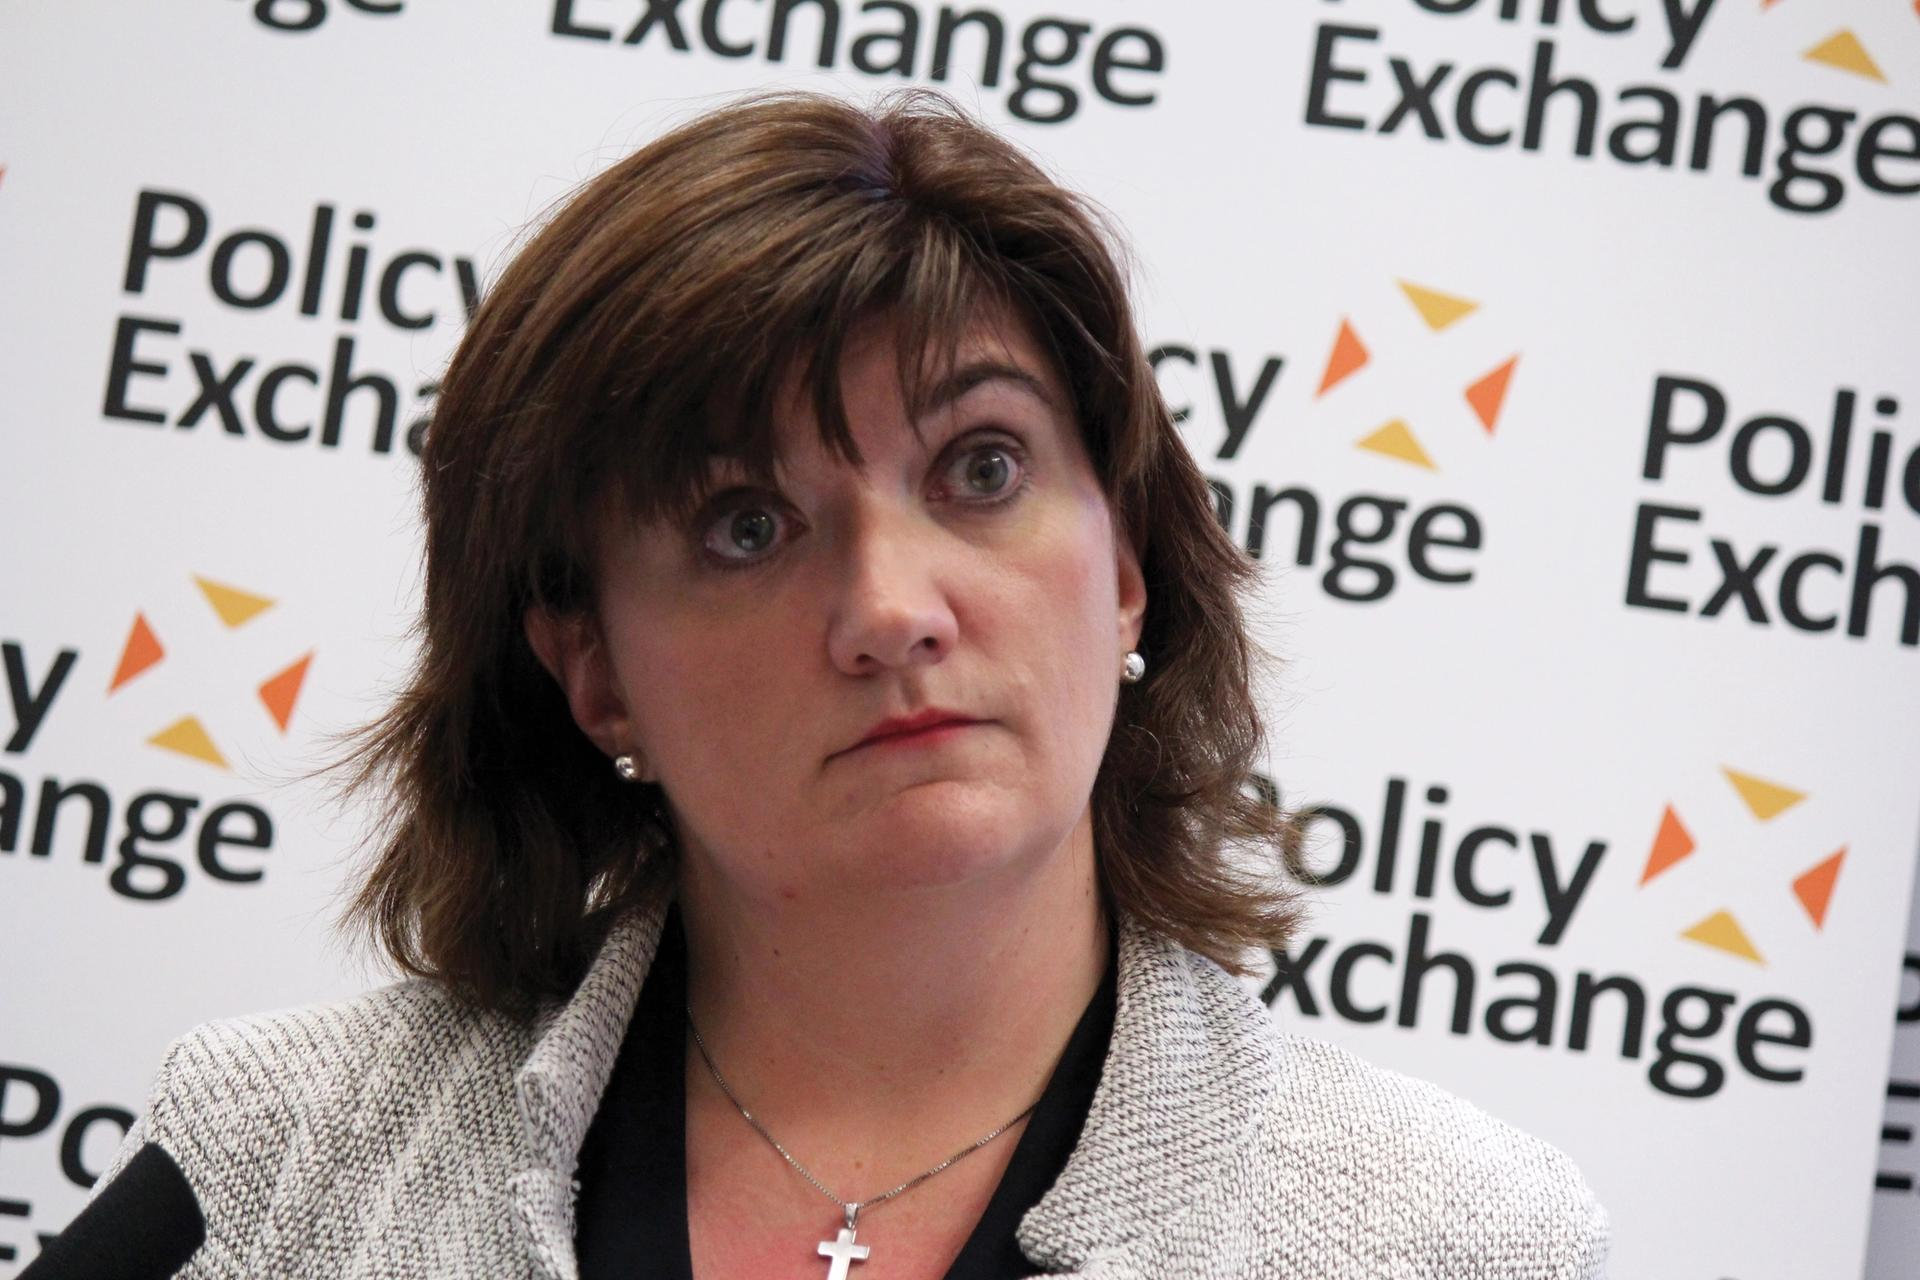 Nicky Morgan Photo: Policy Exchange